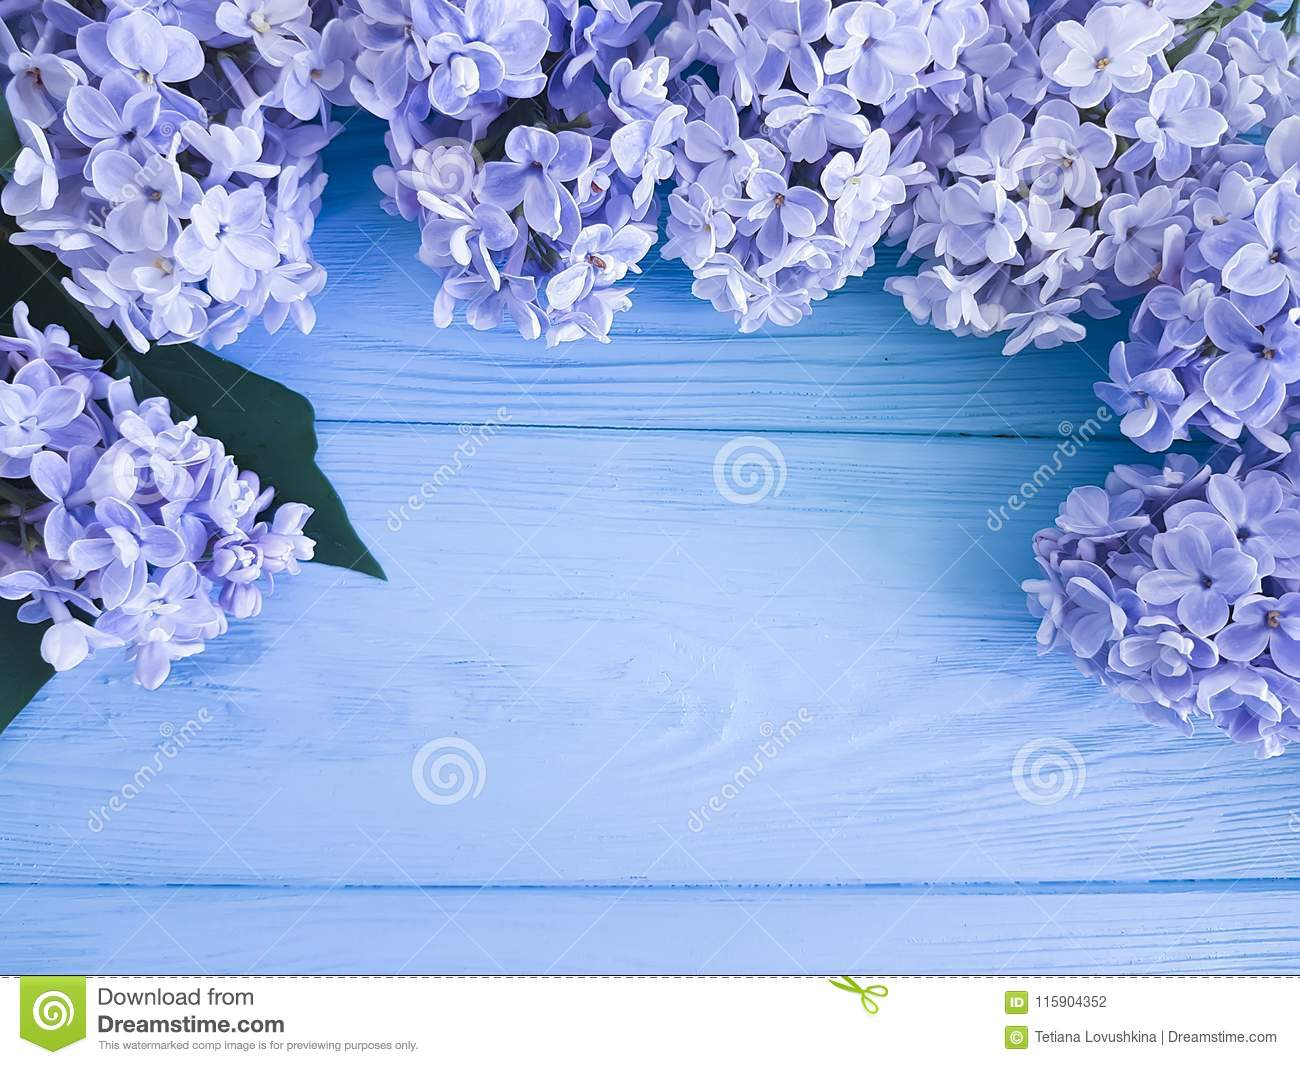 Beautiful fresh lilac decoration greeting anniversary mothers day gift holiday on a wooden background border